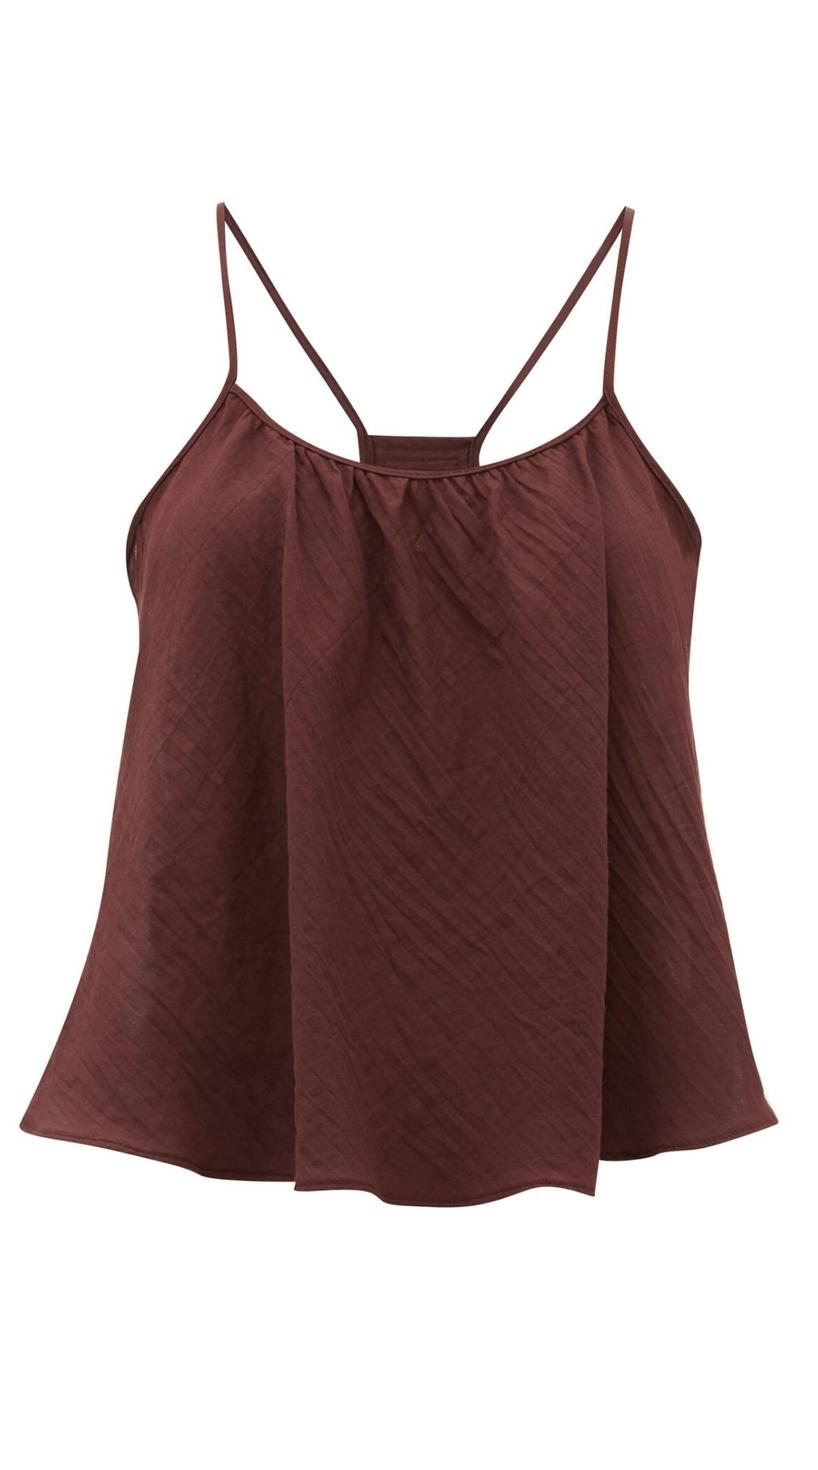 Camis, Cami Tops, Cami pieces, Camis for summer, Cami Trend, SS20 Fashion Trend, Summer Fashion Trends, Summer fashion